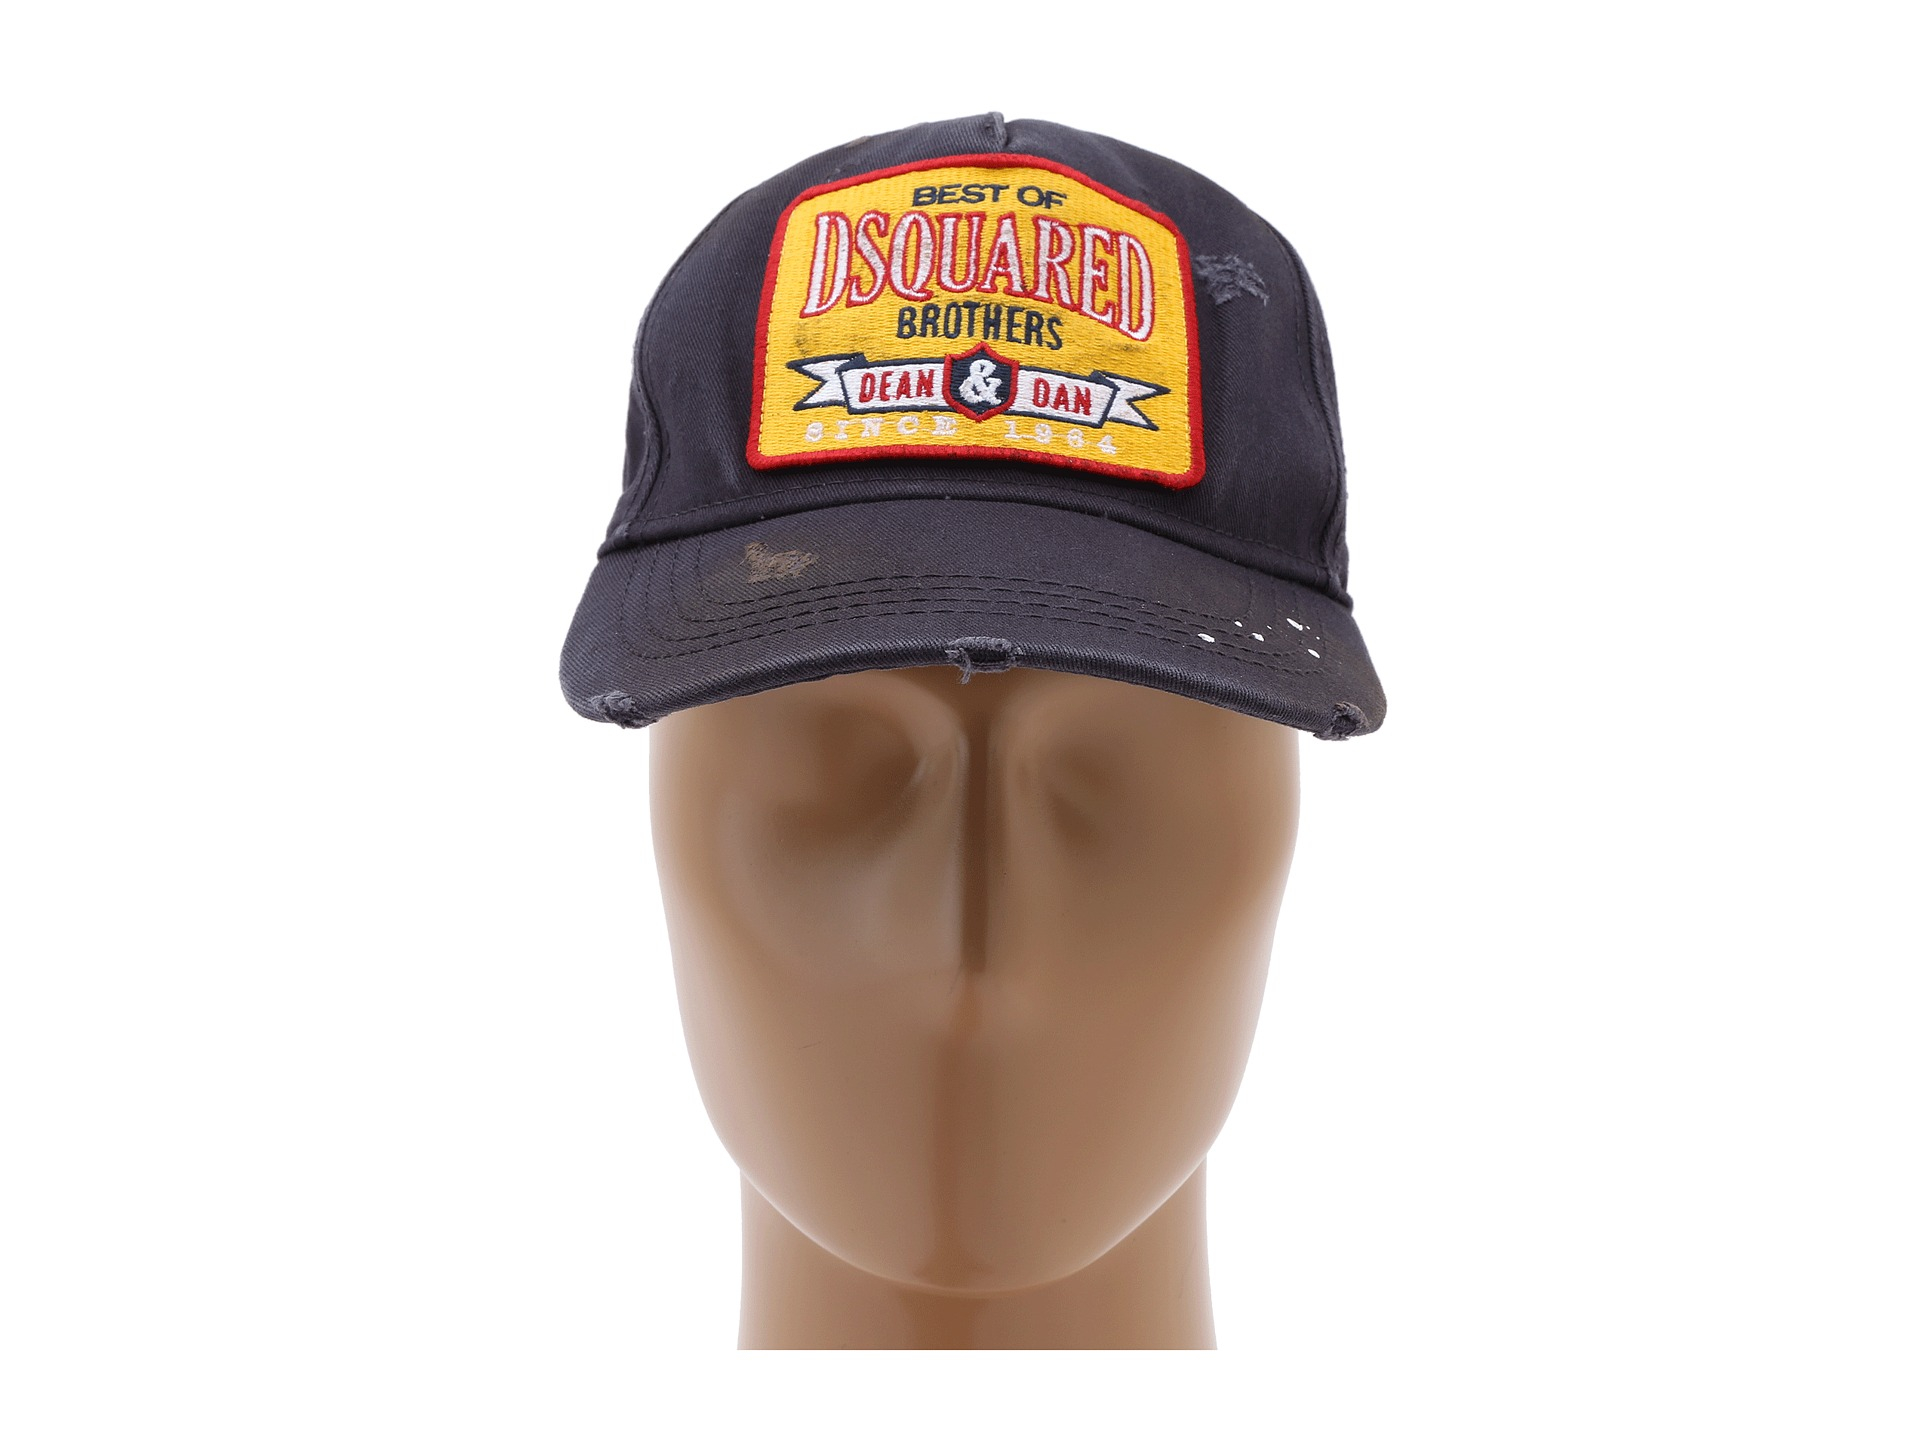 Lyst - DSquared² Dsquared Brothers Baseball Cap in Blue for Men dee950d4280